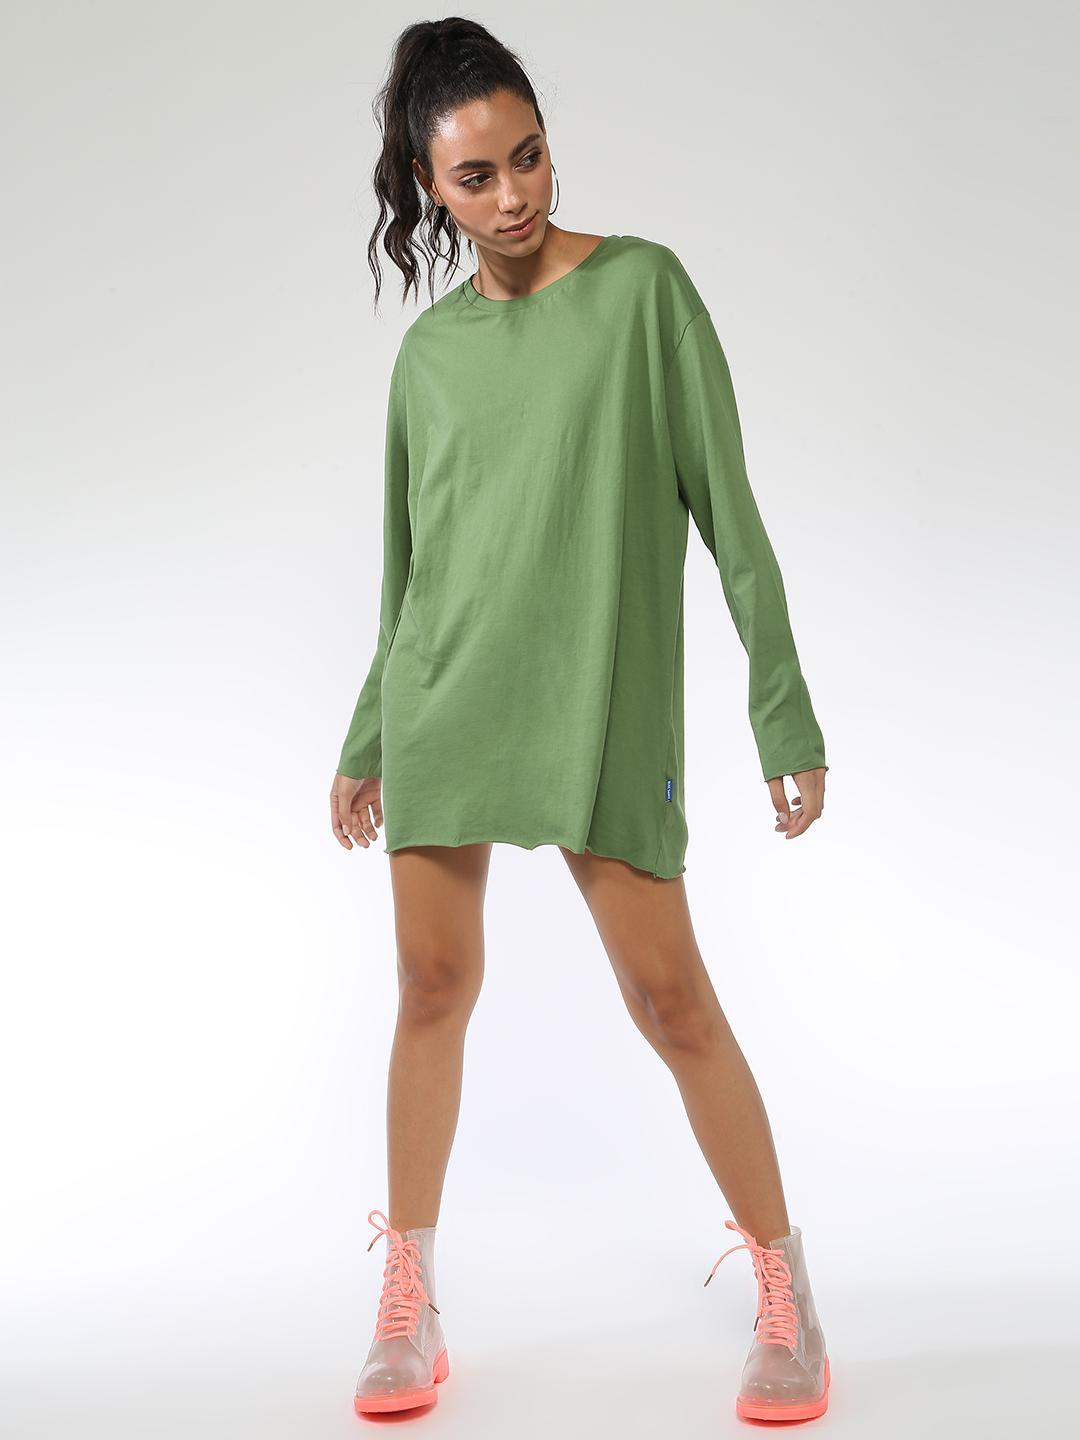 Blue Saint Olive Long Sleeve Shifted Top 1